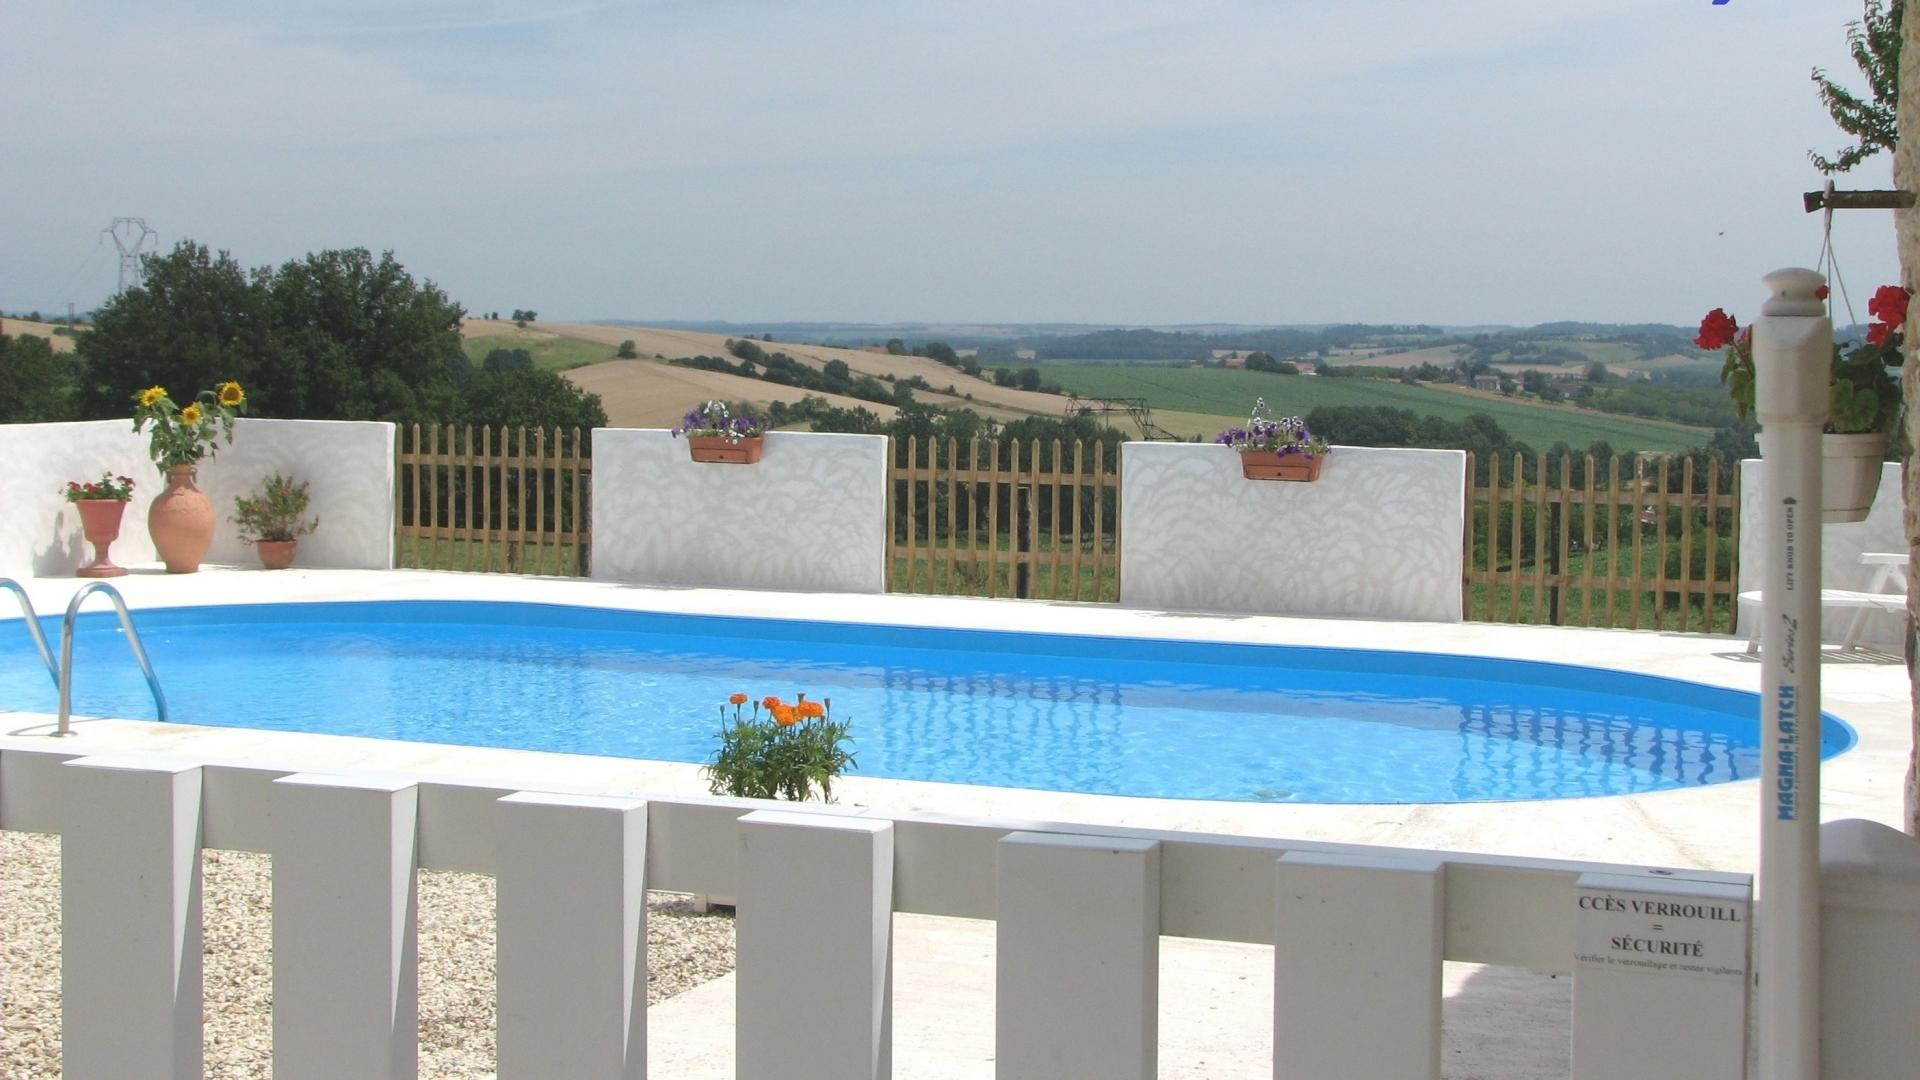 Cottage in the Charente with pony rides, pool and play equipment - ICC